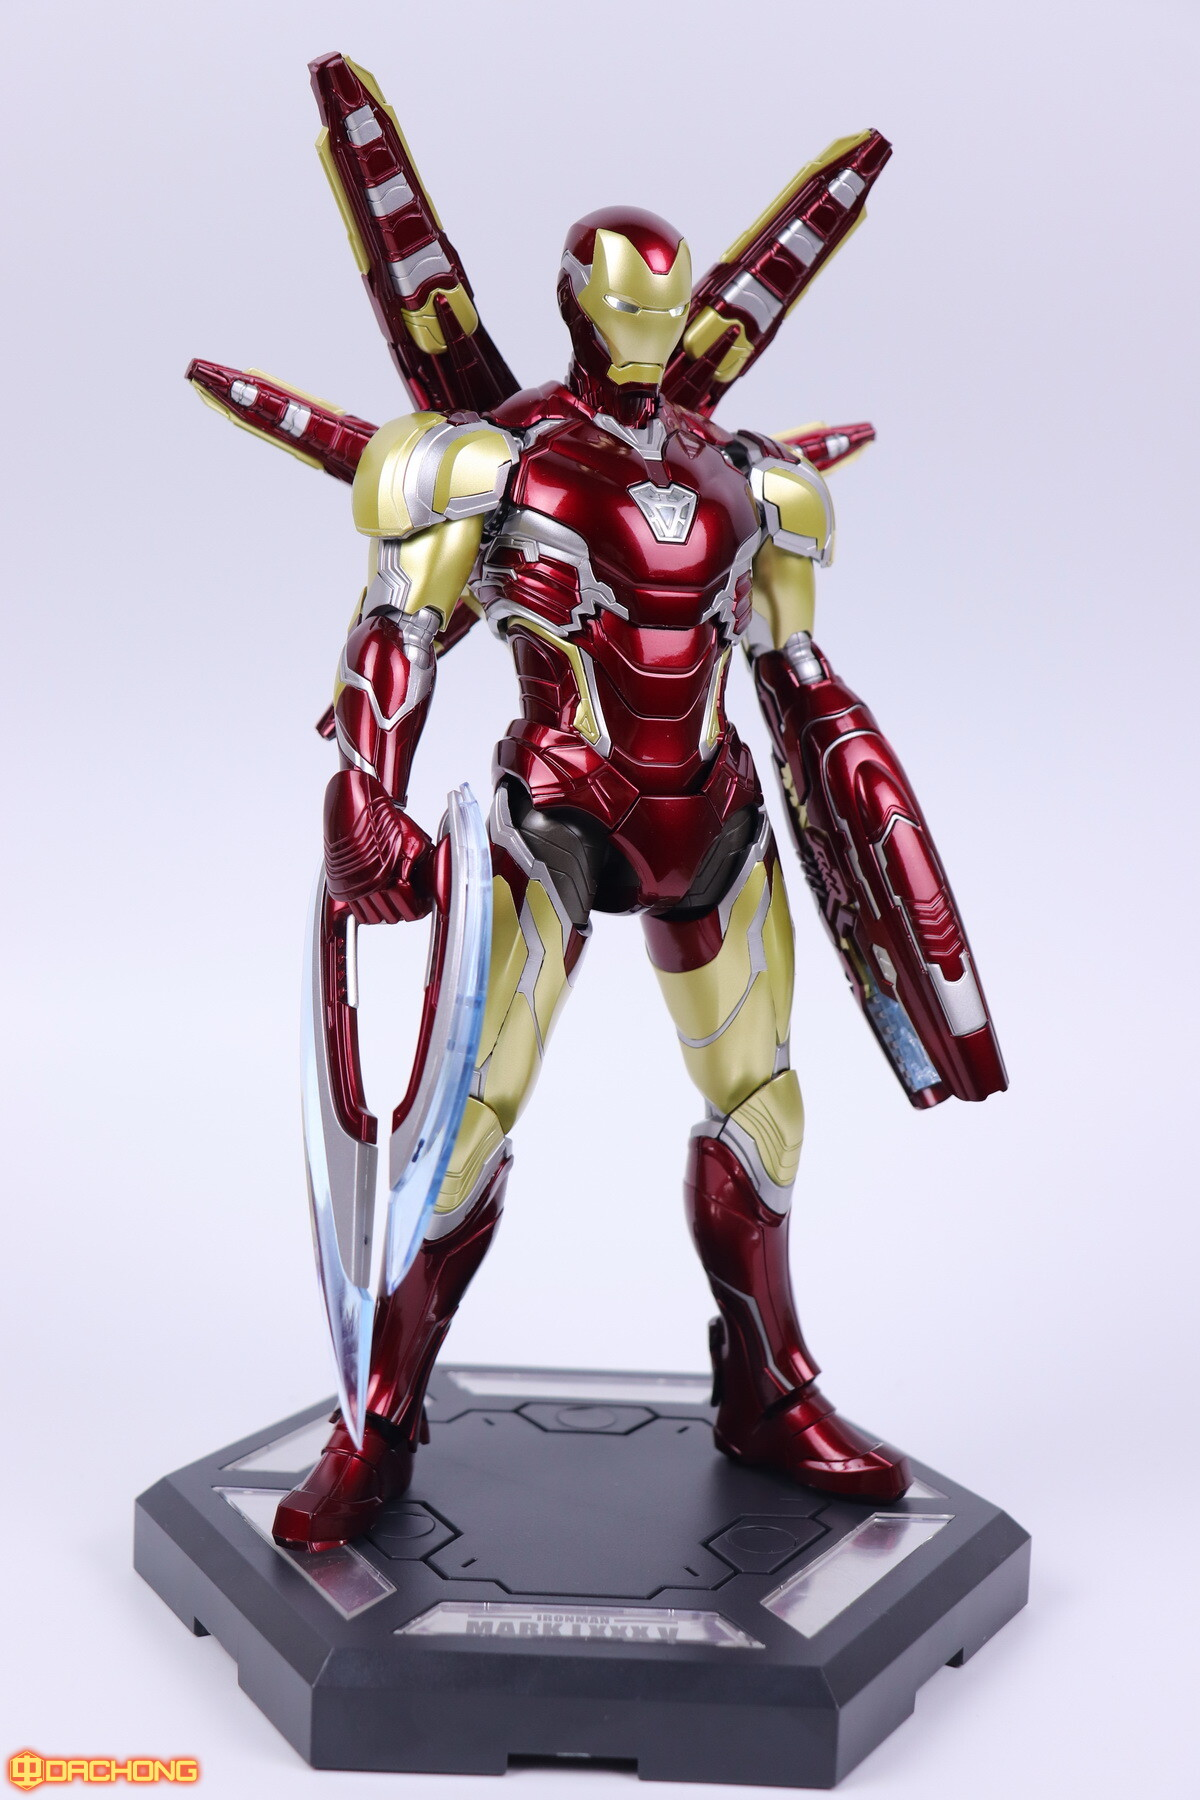 S498_2_e_model_ironman_mk85_dx_120.jpg